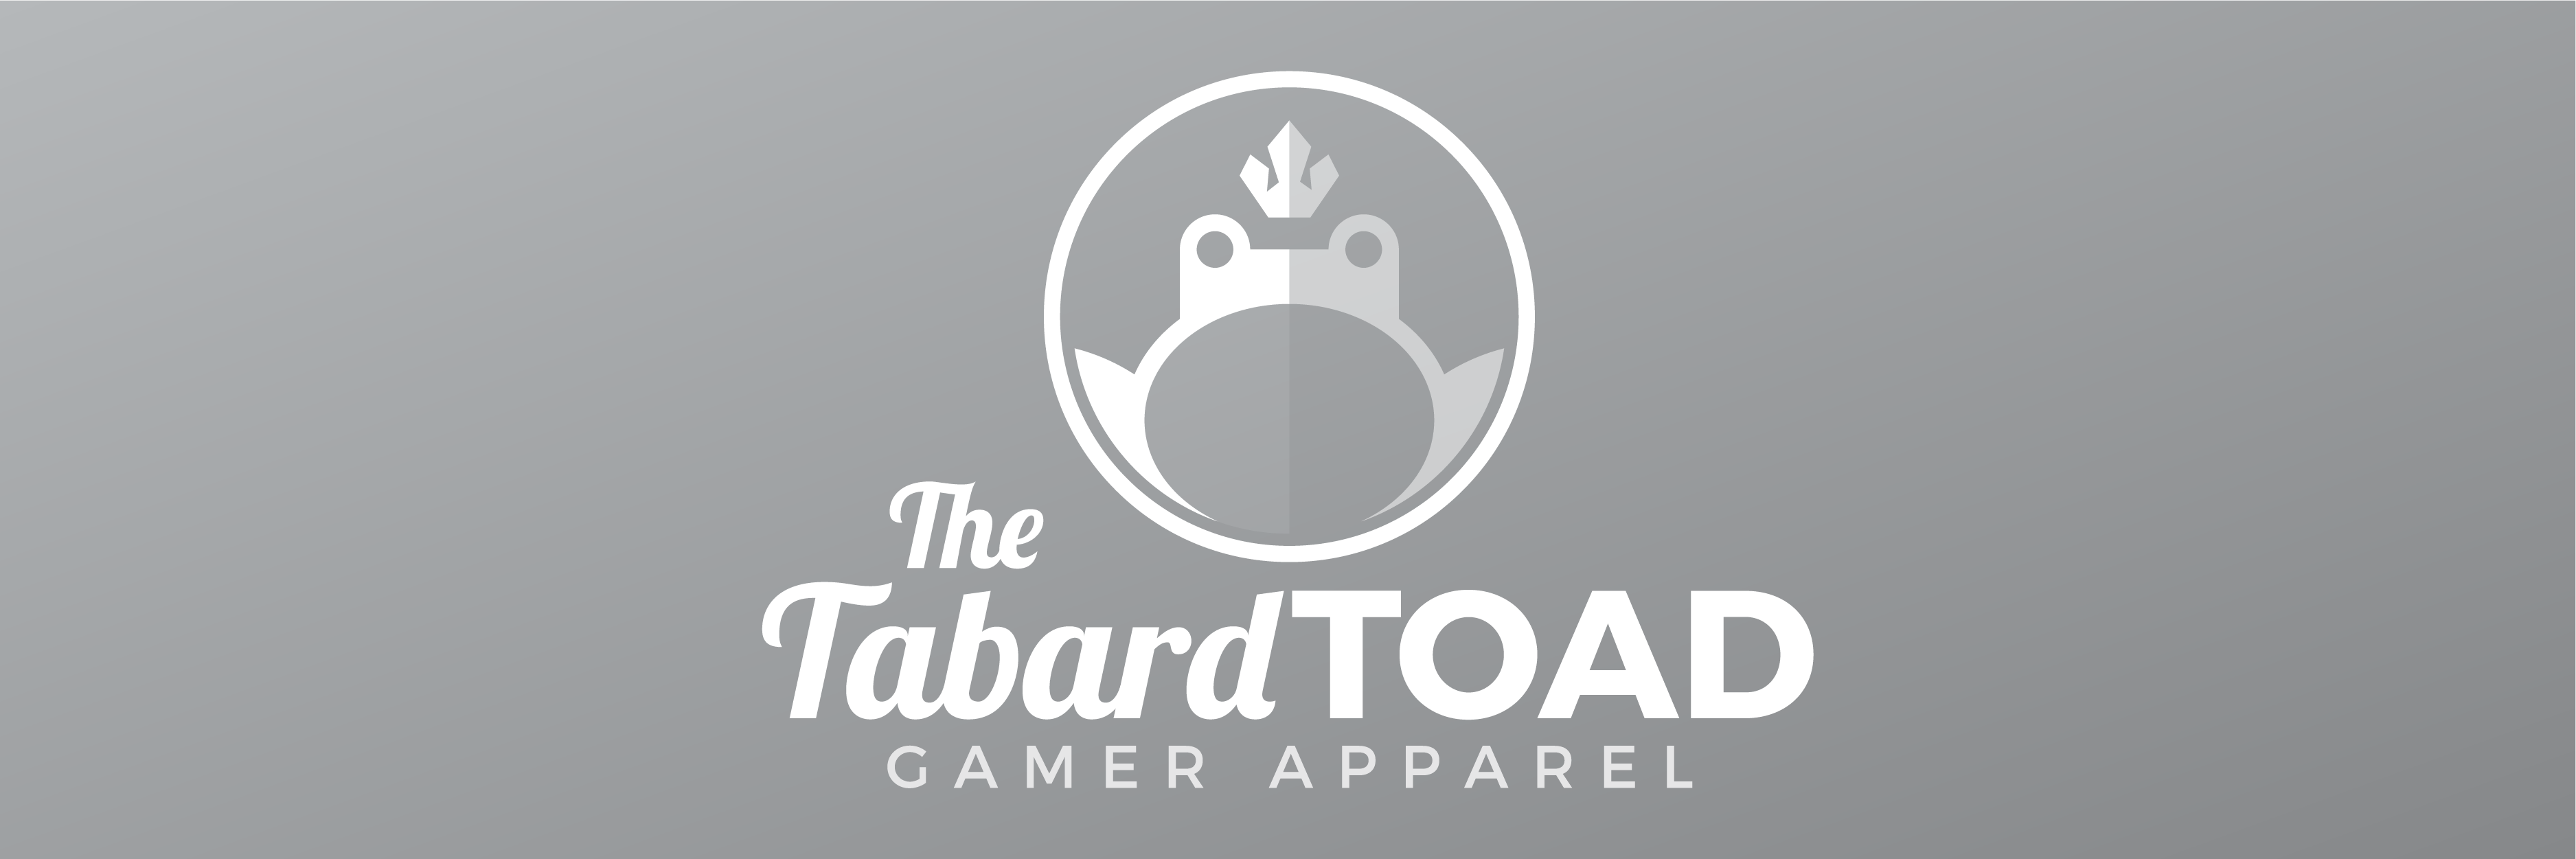 The Tabard Toad Banner Links 14